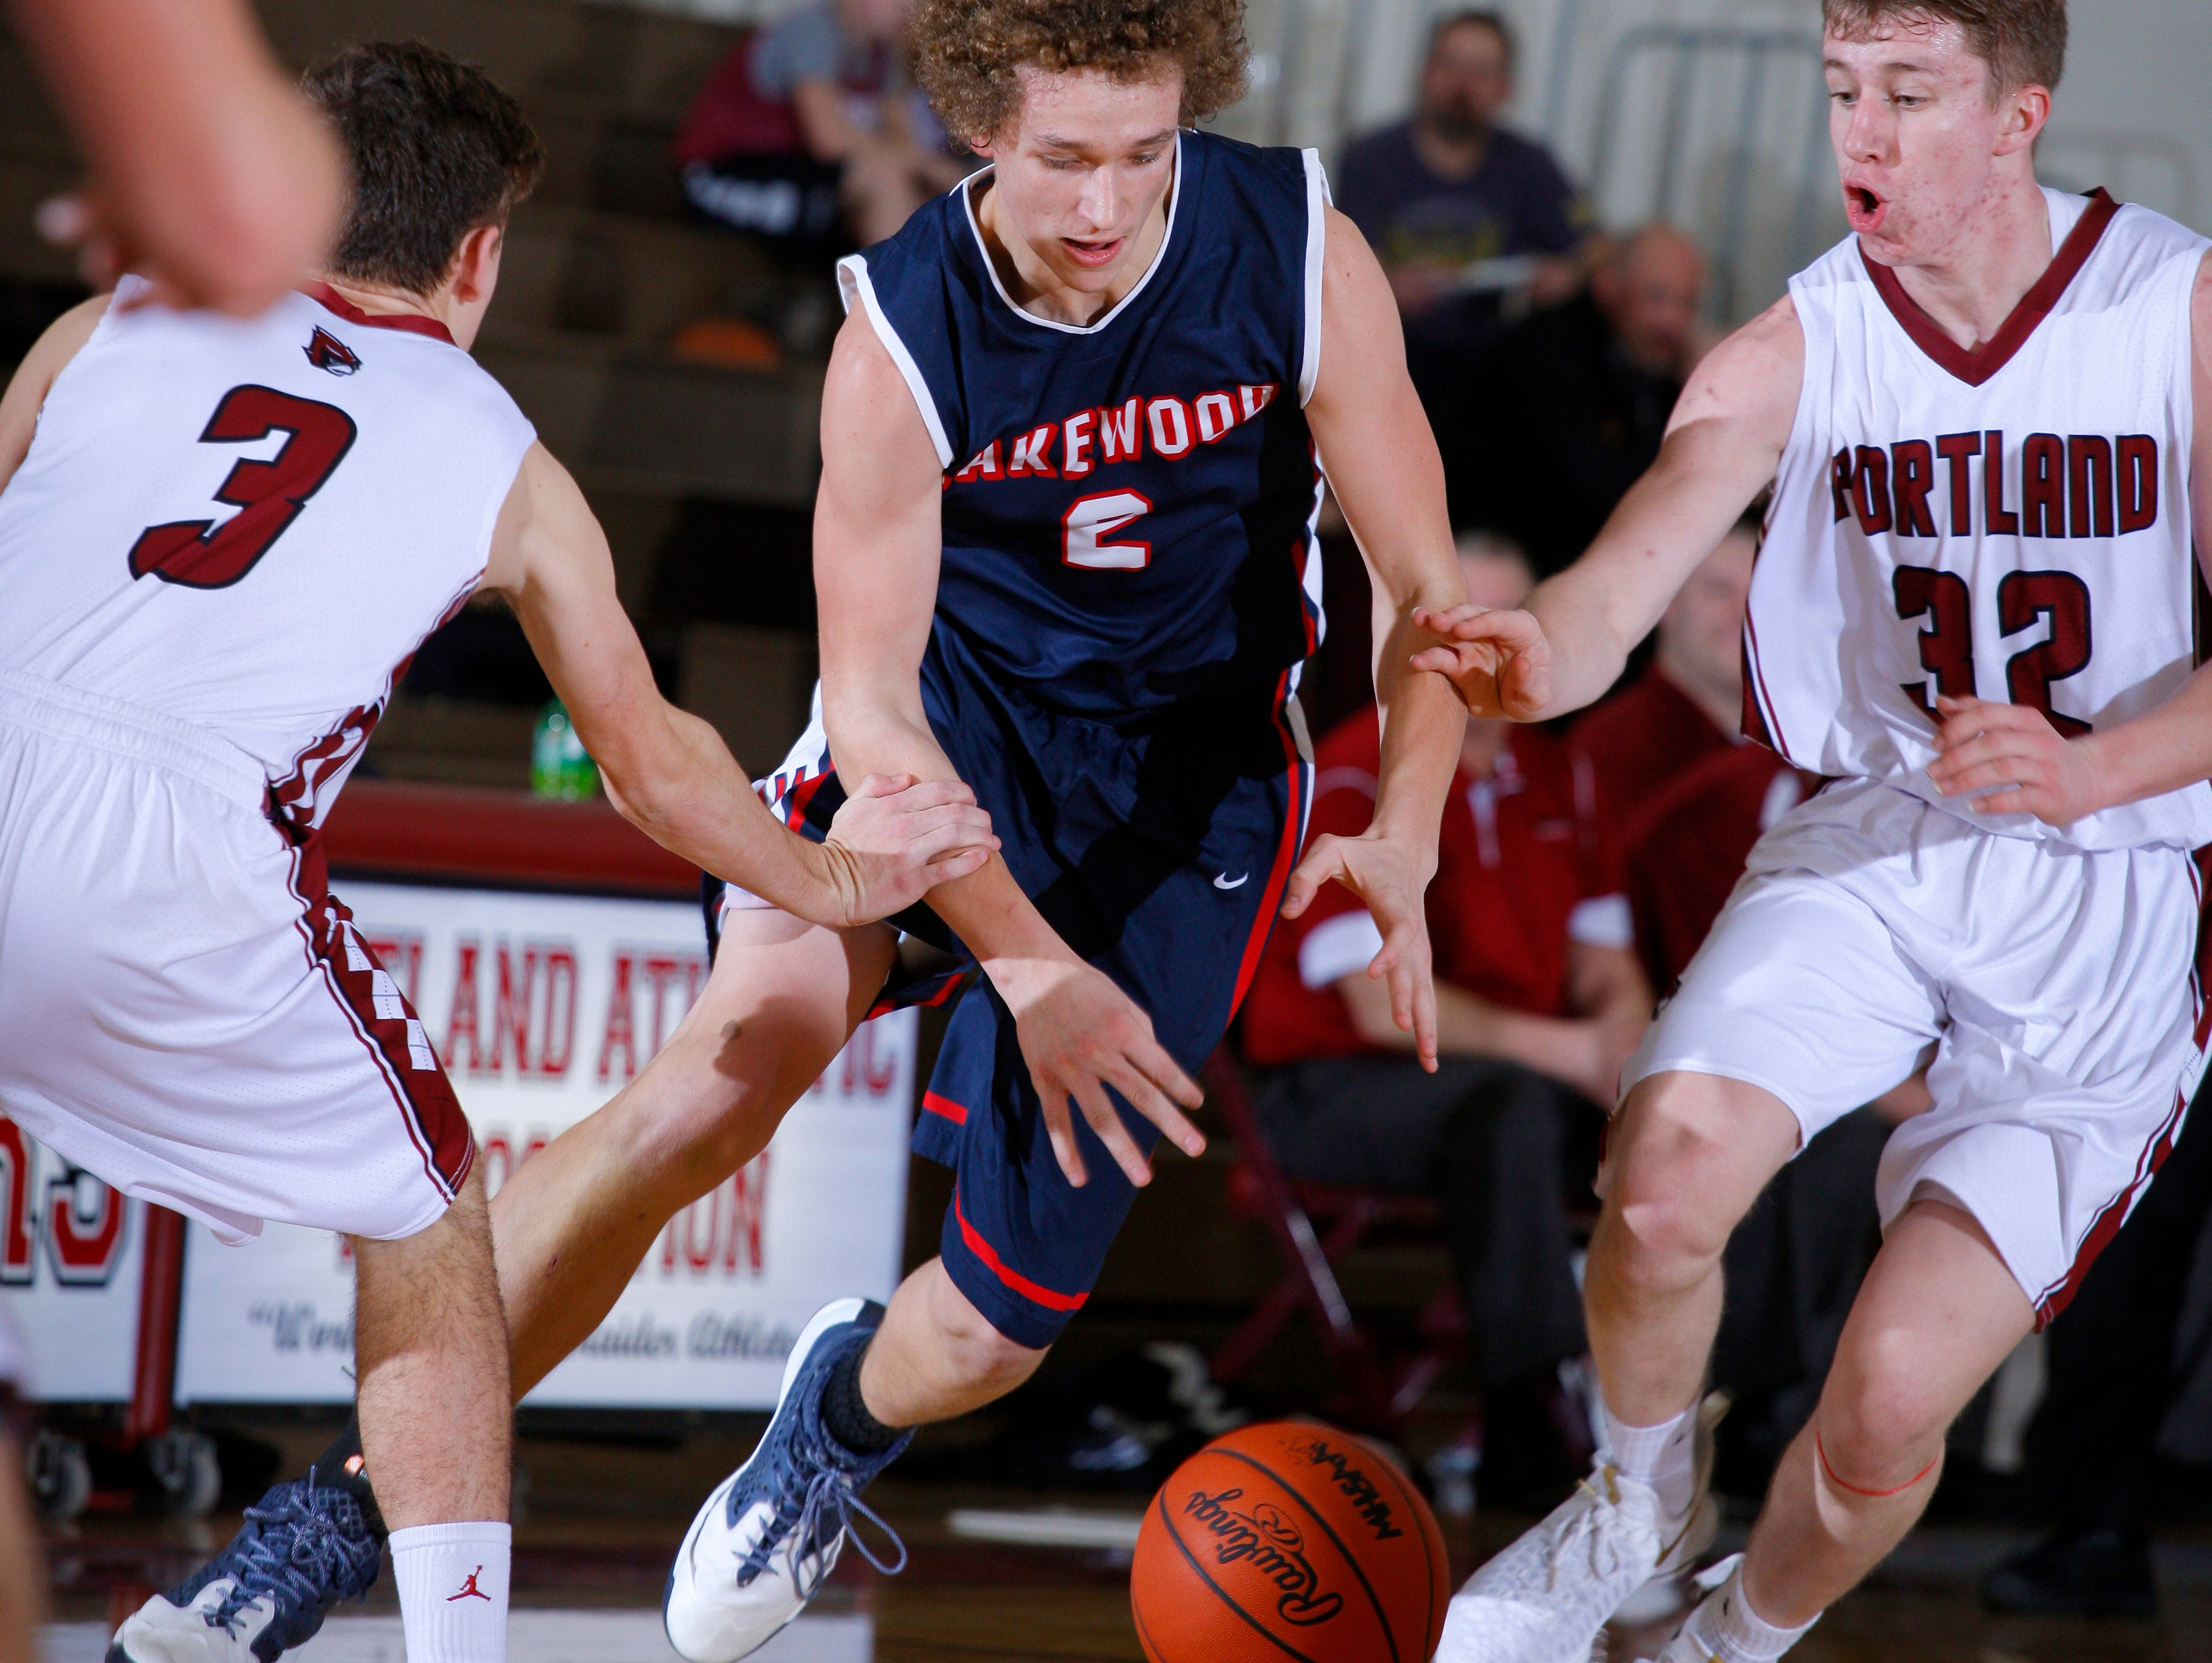 Lakewood's Josh Campeau, center, and Portland's Brett Pung, left, and Bobby Brandsen, right, chase the ball Tuesday, Jan. 31, 2017, at Portland High School. Portland won 53-44.